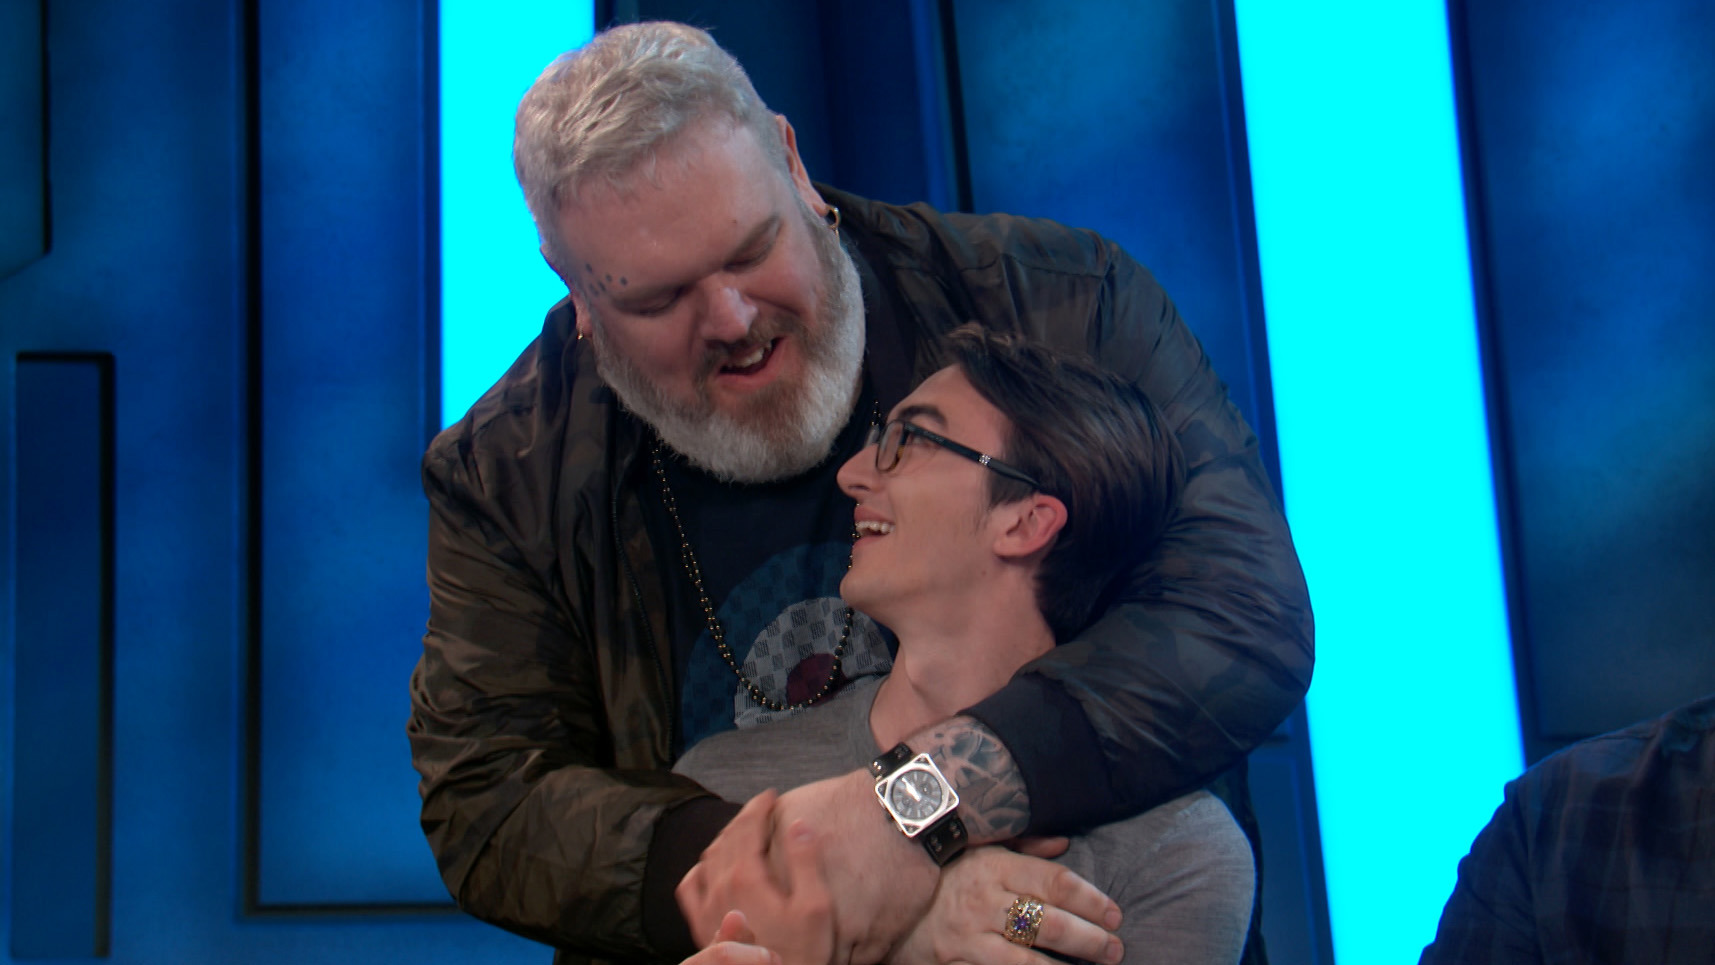 Isaac Hempstead Wright and Kristian Nairn in Conan (2010)